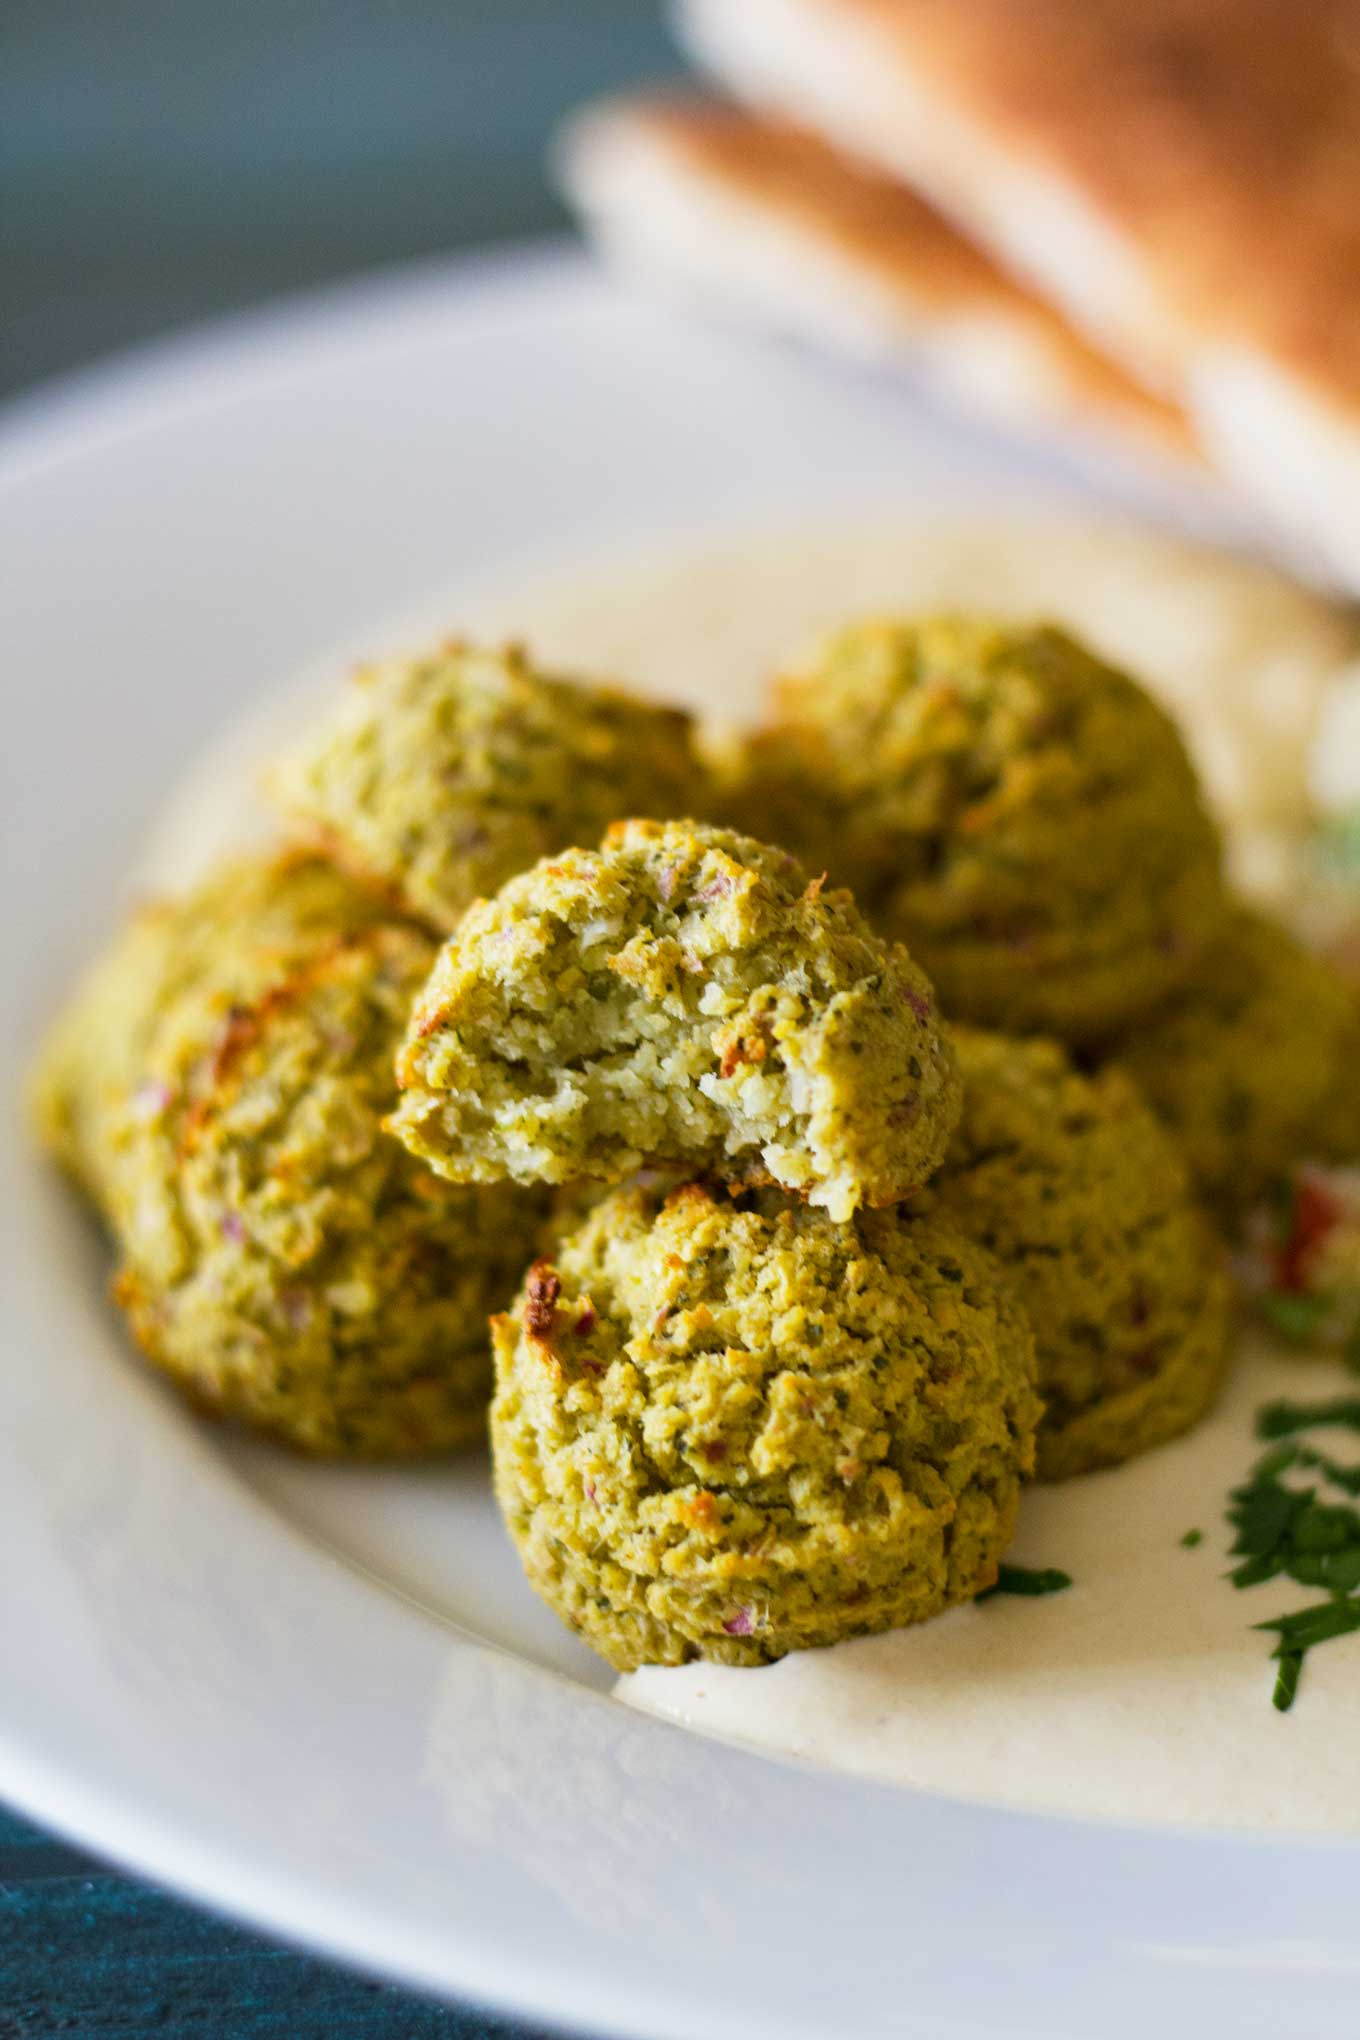 Oven-Baked Falafel close-up with a bite taken out | Plant-based | Oil-free | Vegan | Gluten-free | https://eatwithinyourmeans.com/